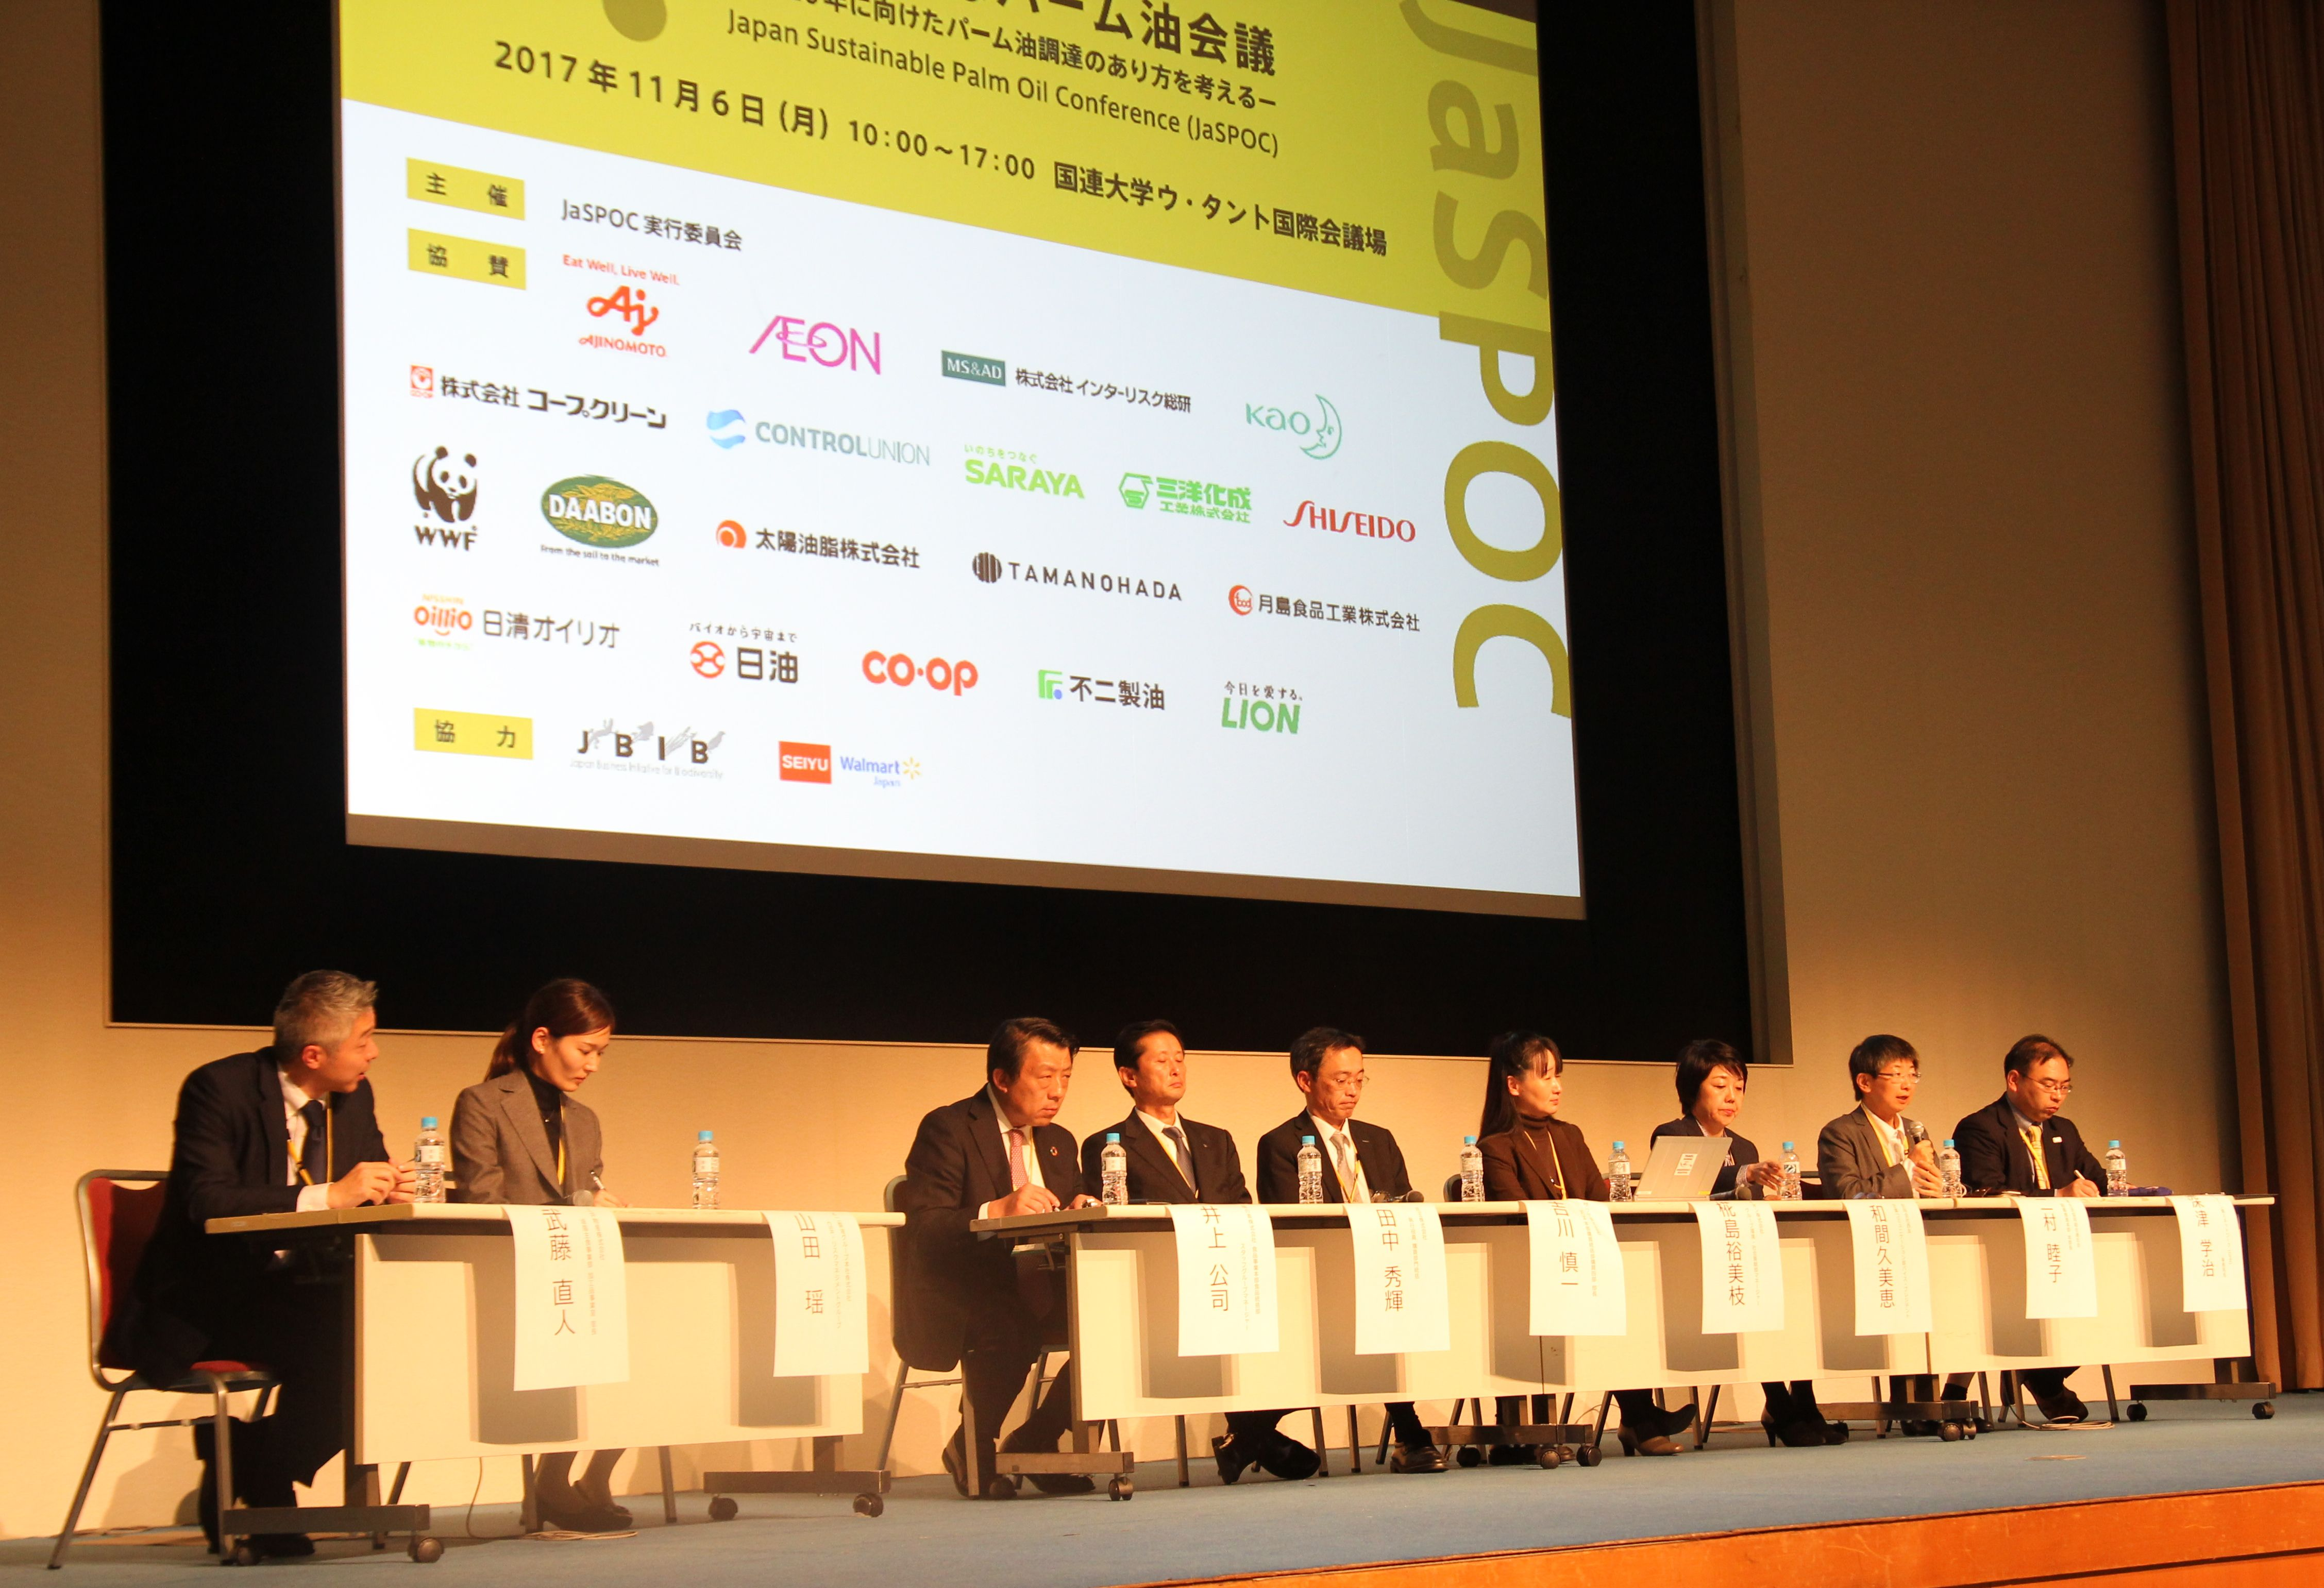 Sustainable palm oil conference held